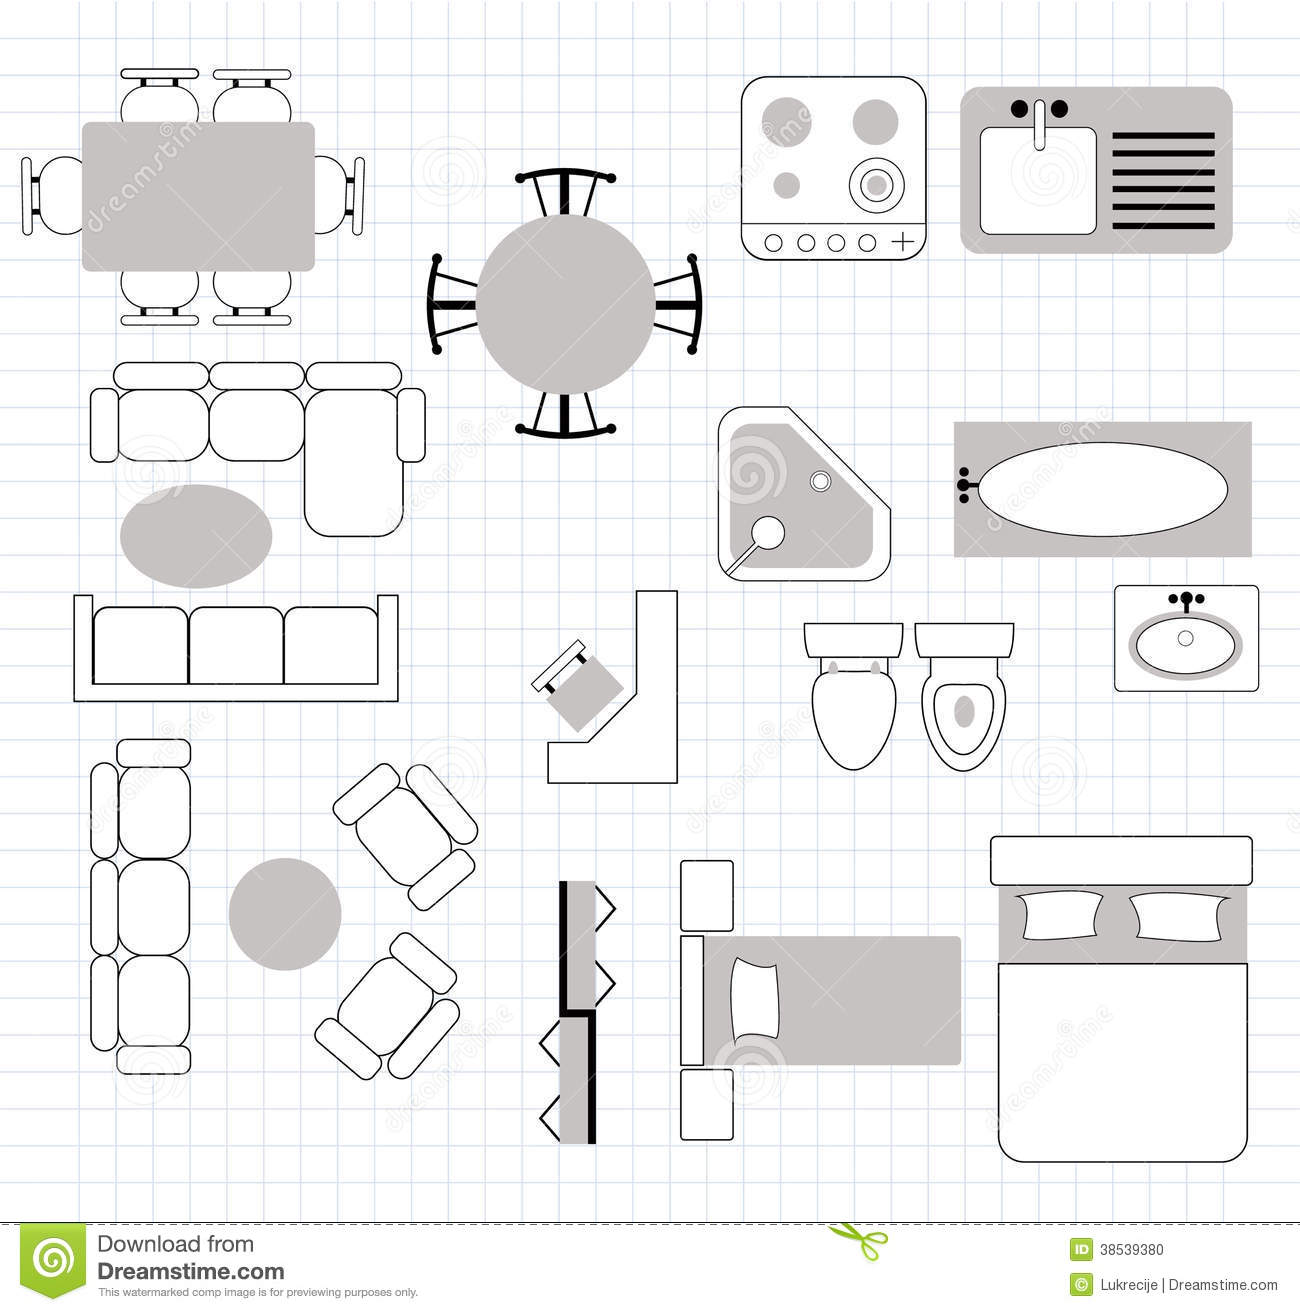 Clipart furniture floor plan clipground for Blueprint drawing program